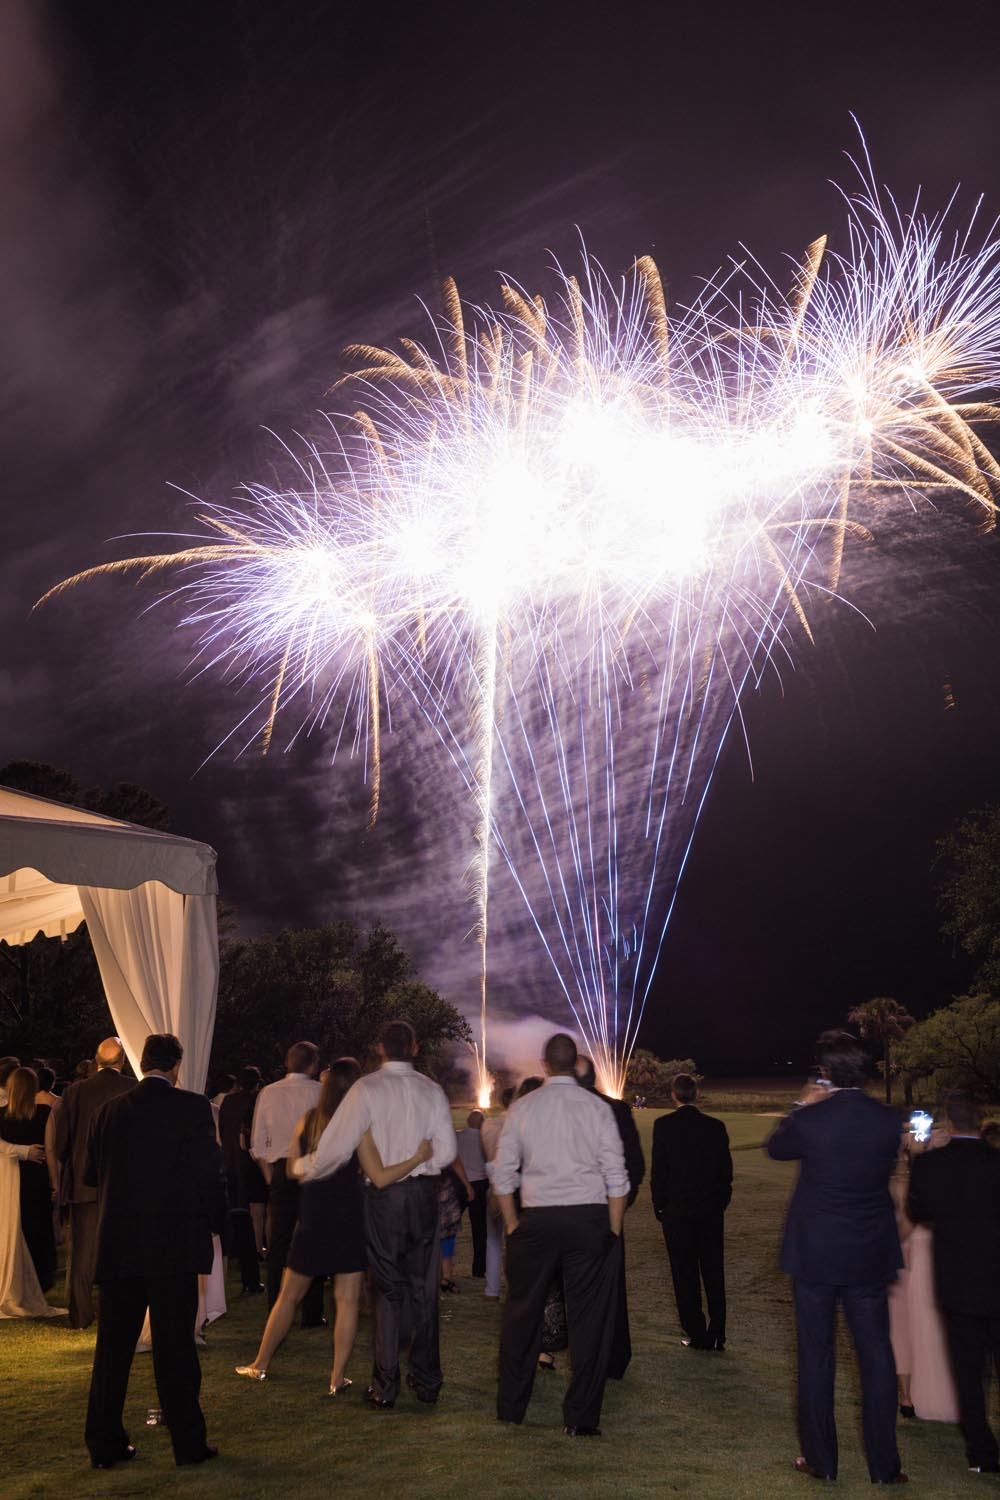 The real showstopper was the night's end which was concluded with a grand firework display that left everyone seeing stars! Wedding planning and design by A Charleston Bride.